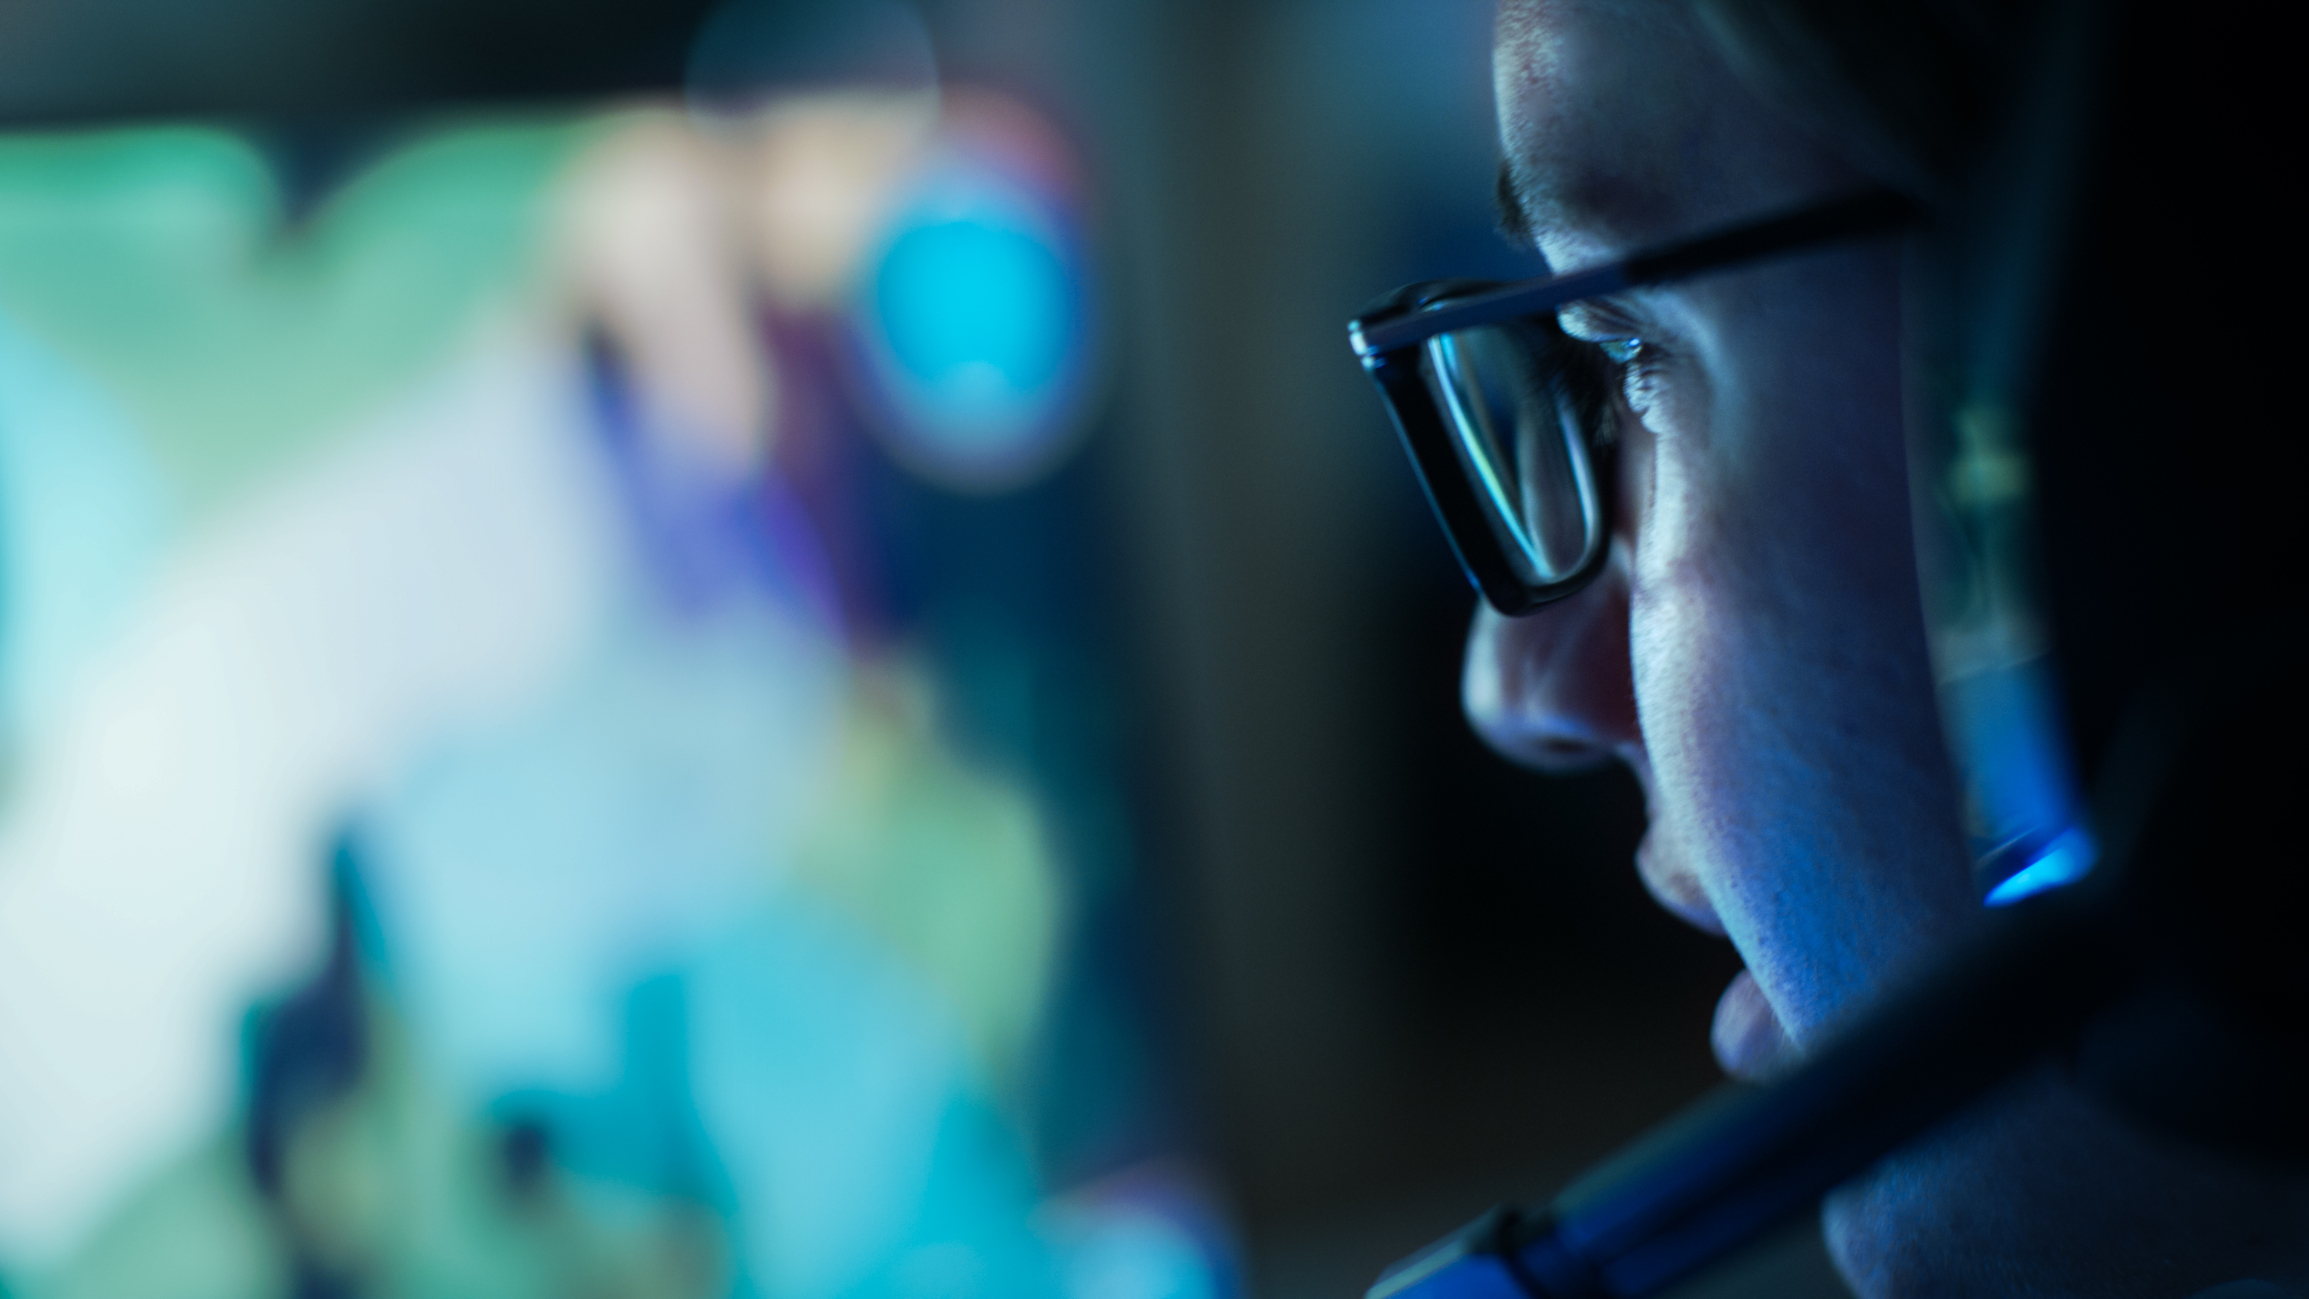 Close-up Shot of Professional Gamer Plays in MMORPG/ Strategy Video Game on His Computer. He's Participating in Online Cyber Games Tournament, Plays at Home, or in Internet Cafe. He Wears Glasses and Gaming Headsets.